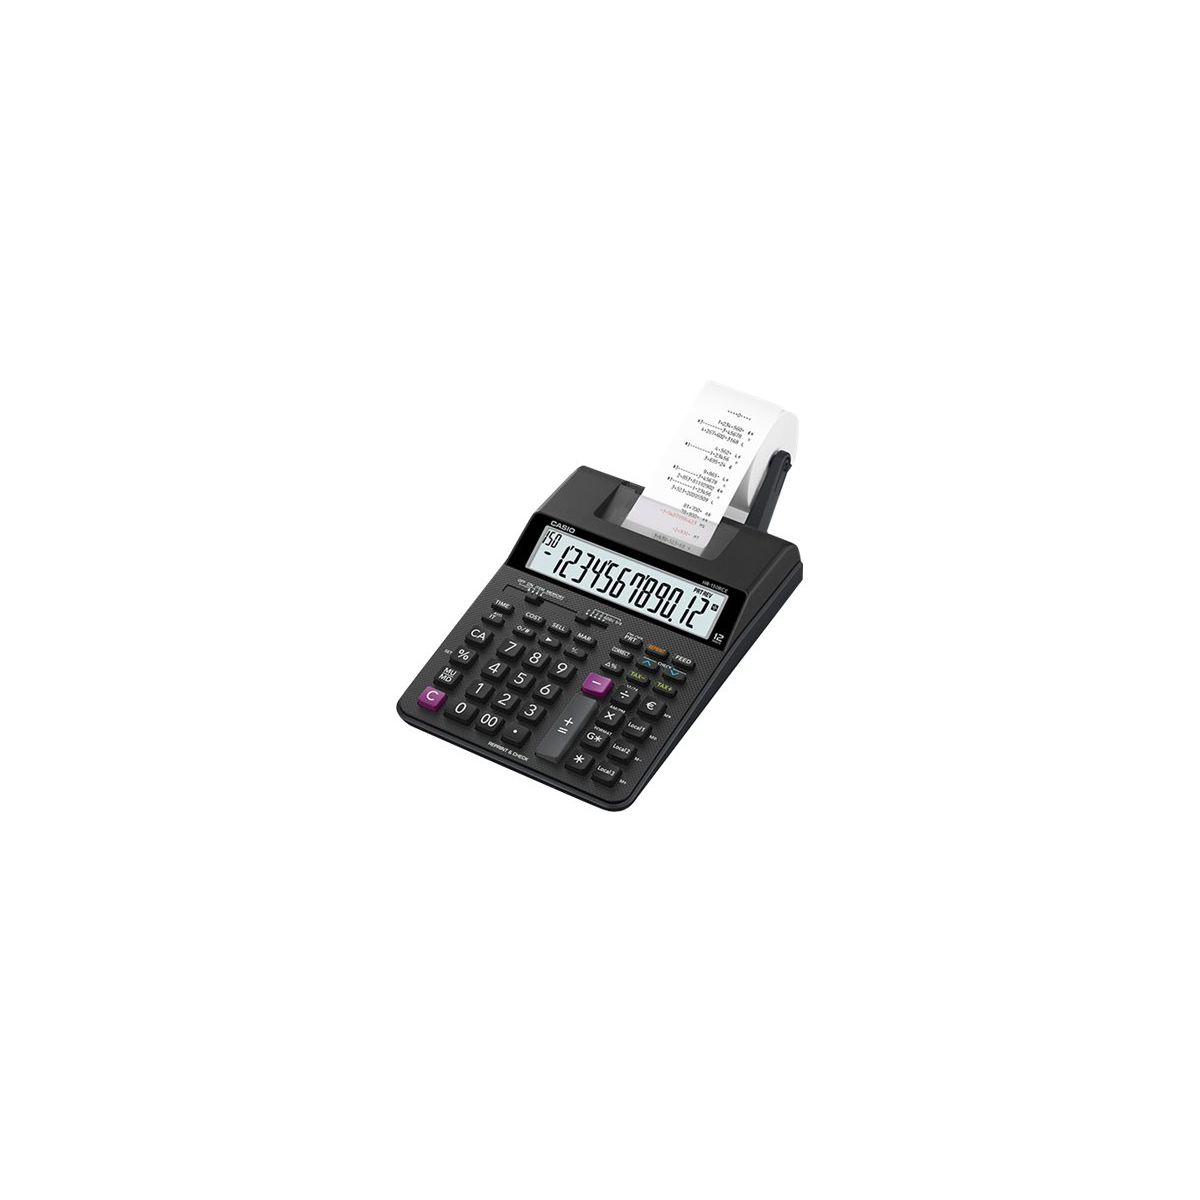 Calc-Impr CASIO HR150RCE (photo)